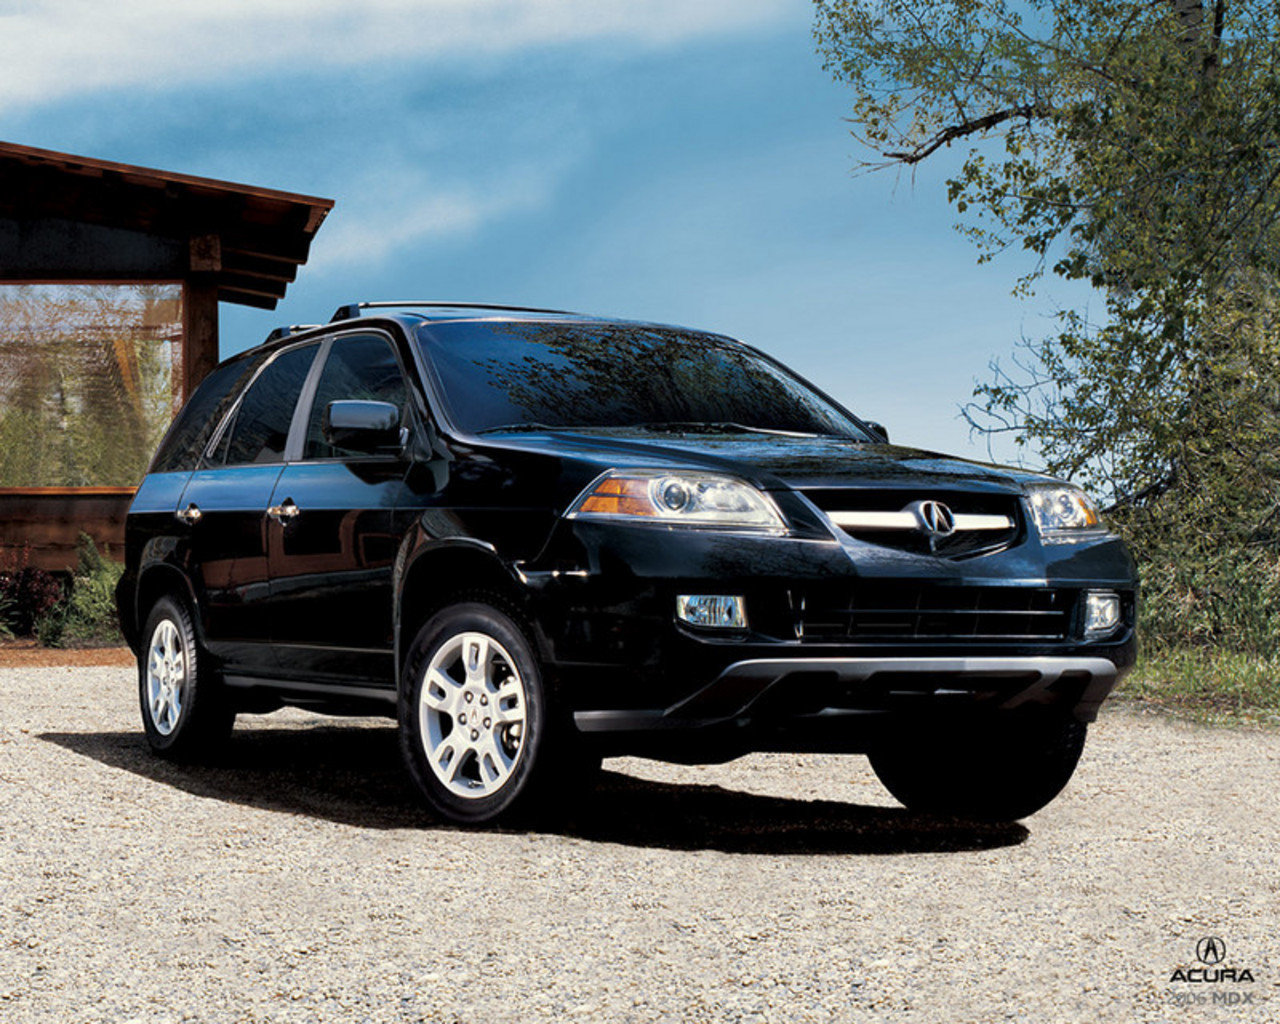 2006 acura mdx picture 35326 car review top speed. Black Bedroom Furniture Sets. Home Design Ideas